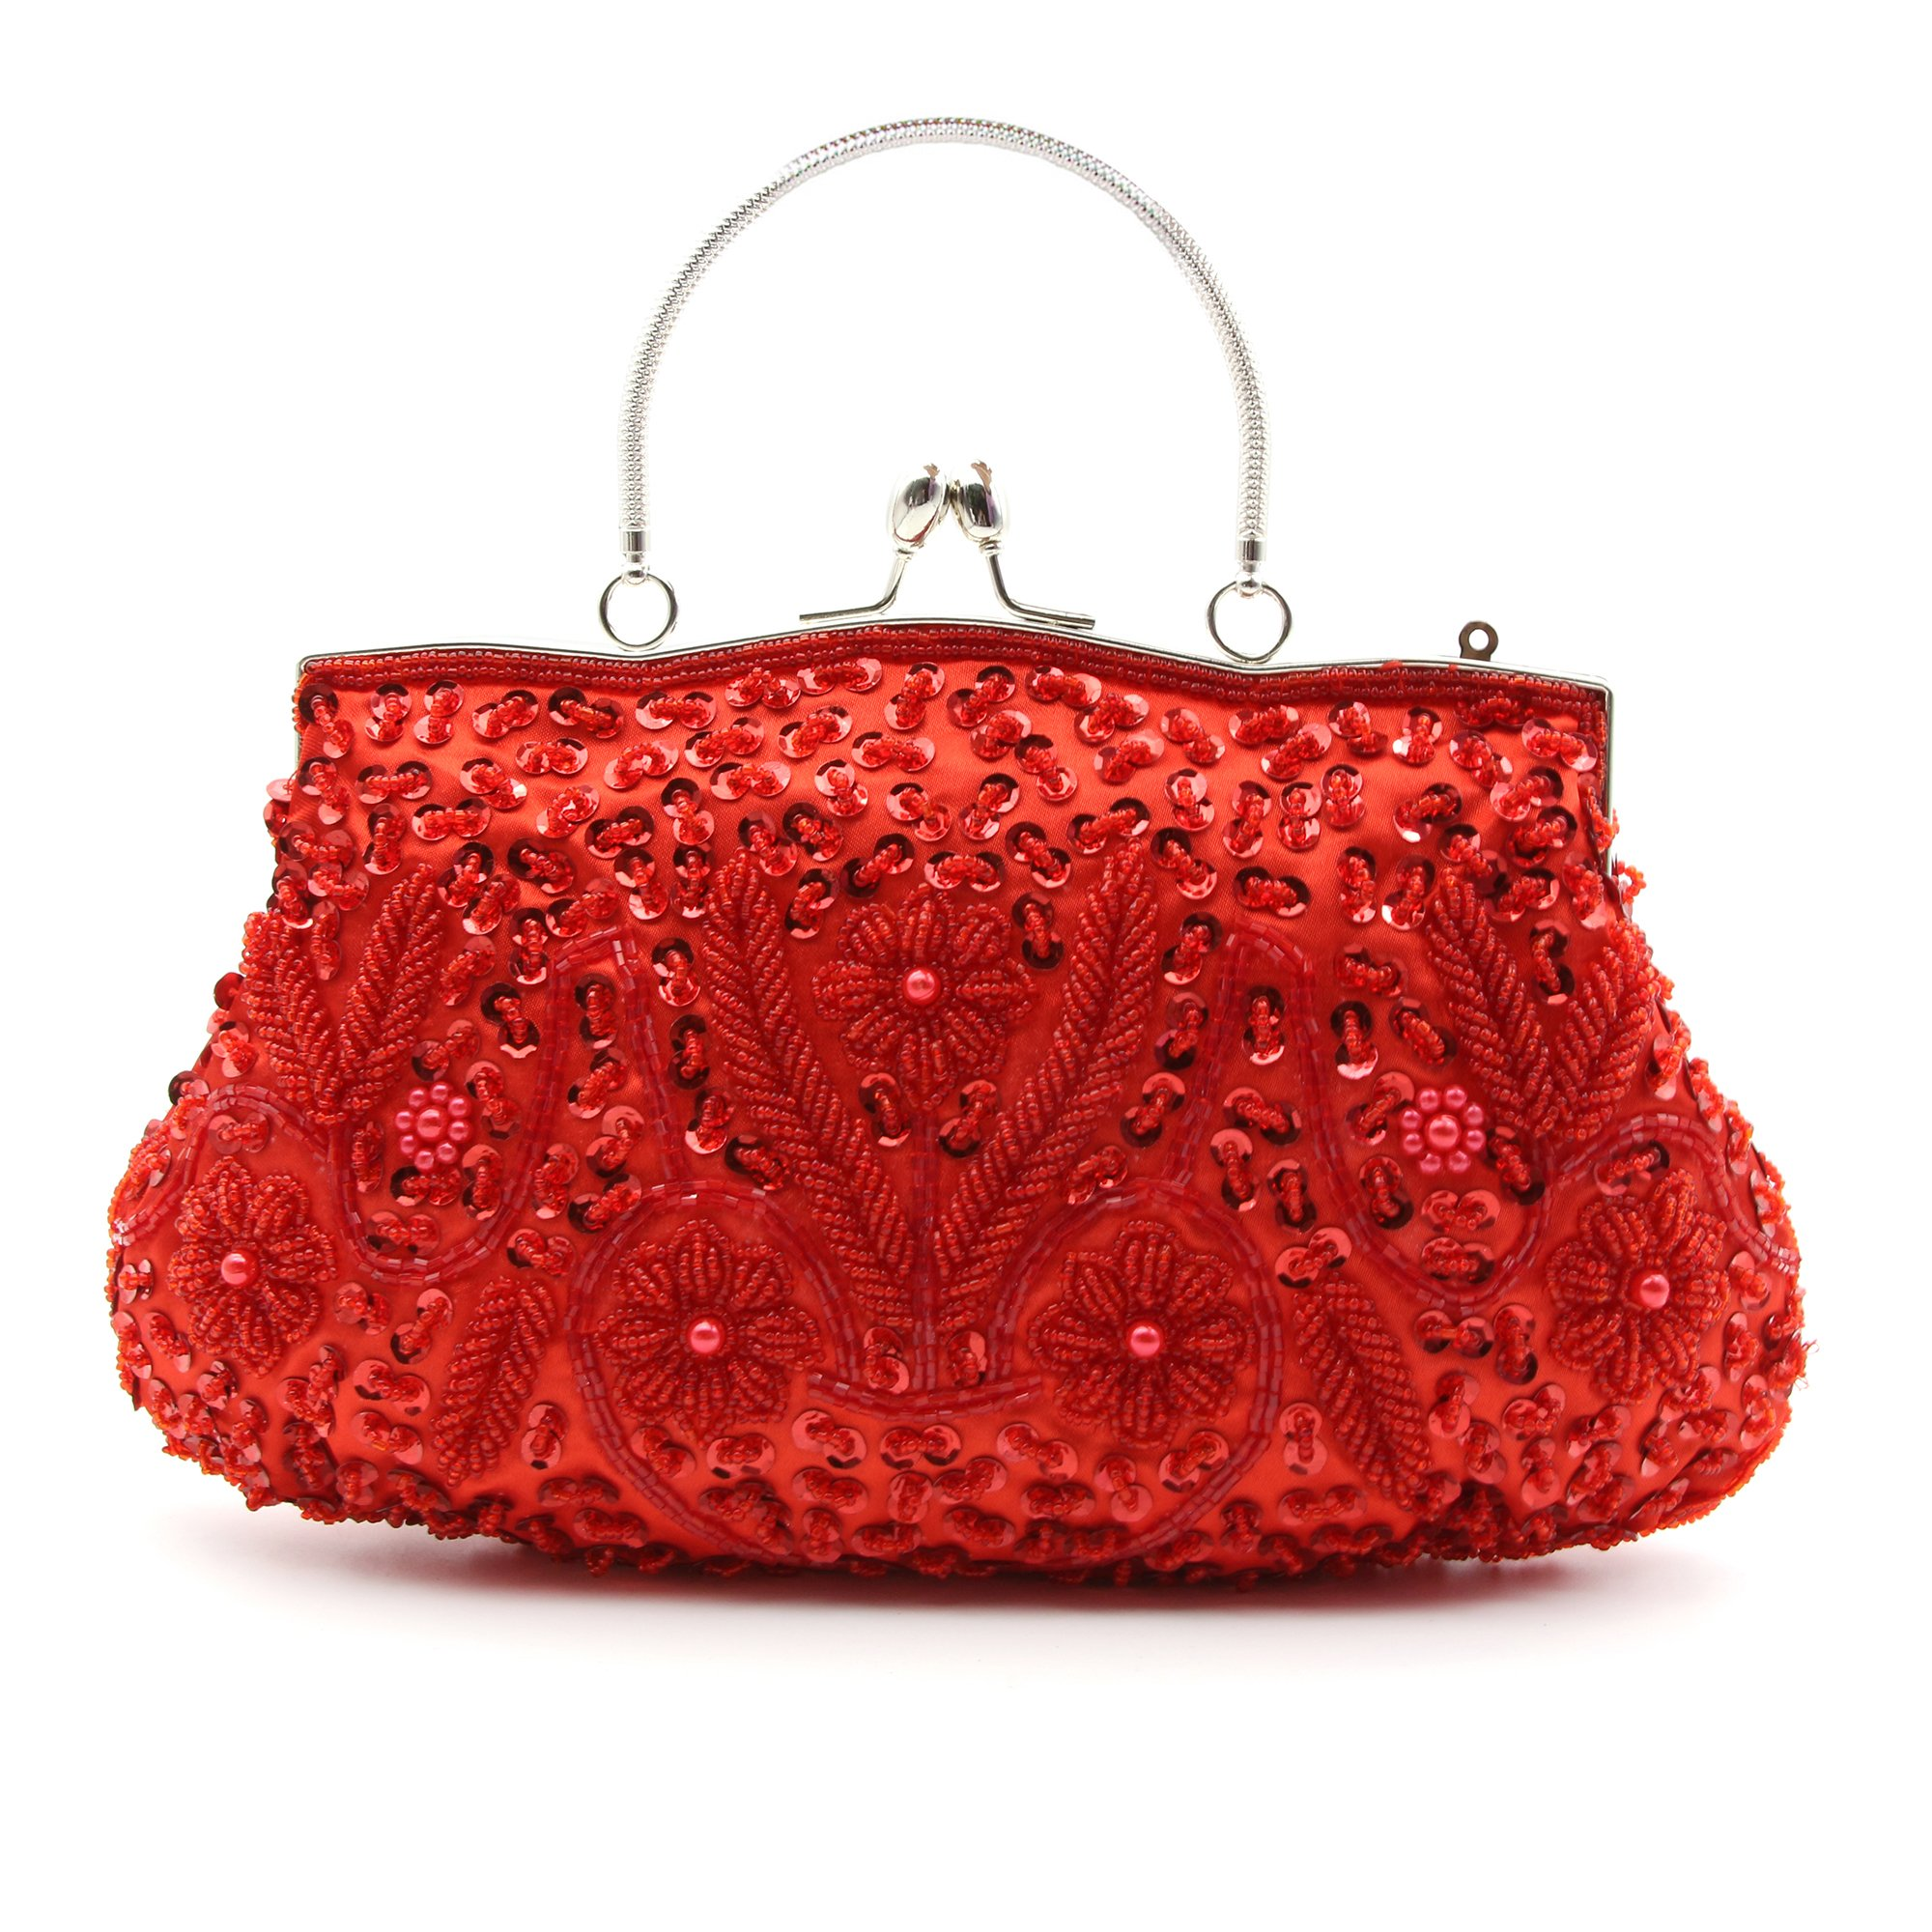 HOTER Antique Floral Seed/Bead/Sequin Soft Exquisite Seed Bead Sequined Leaf Clutch Handbag,Gift Ideas-Colors Various